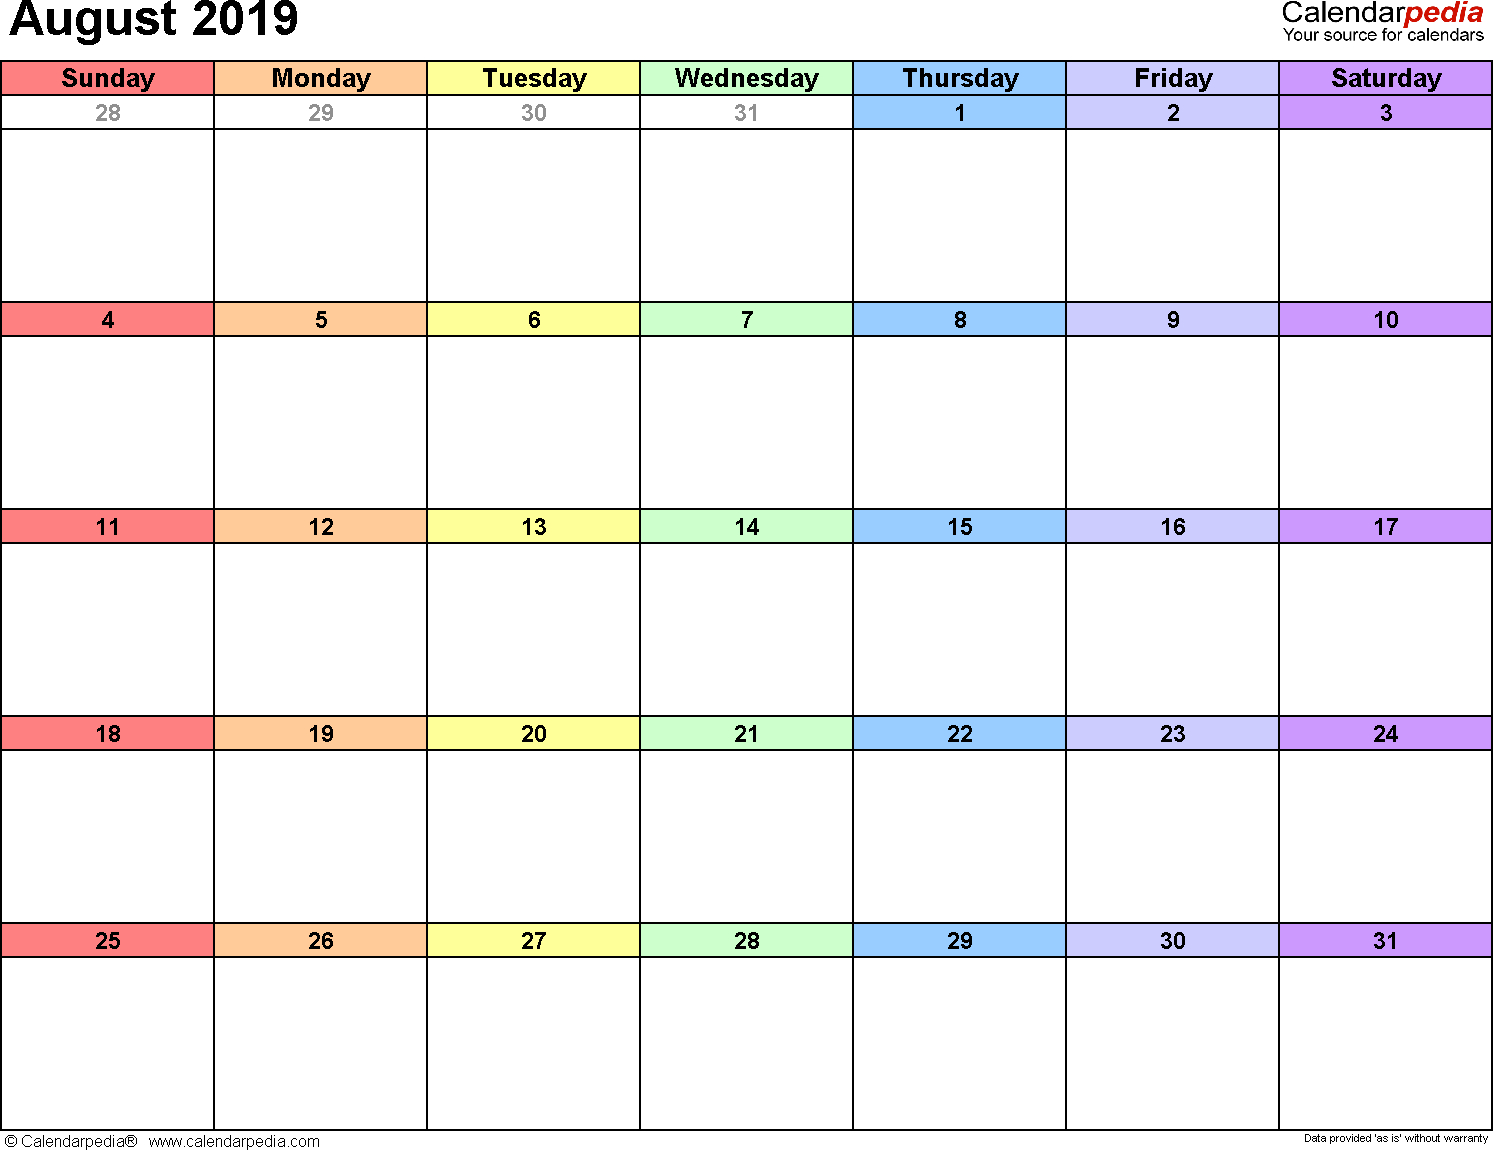 Calendarpedia - Your Source For Calendars for Printable Template Monthly Schedule August